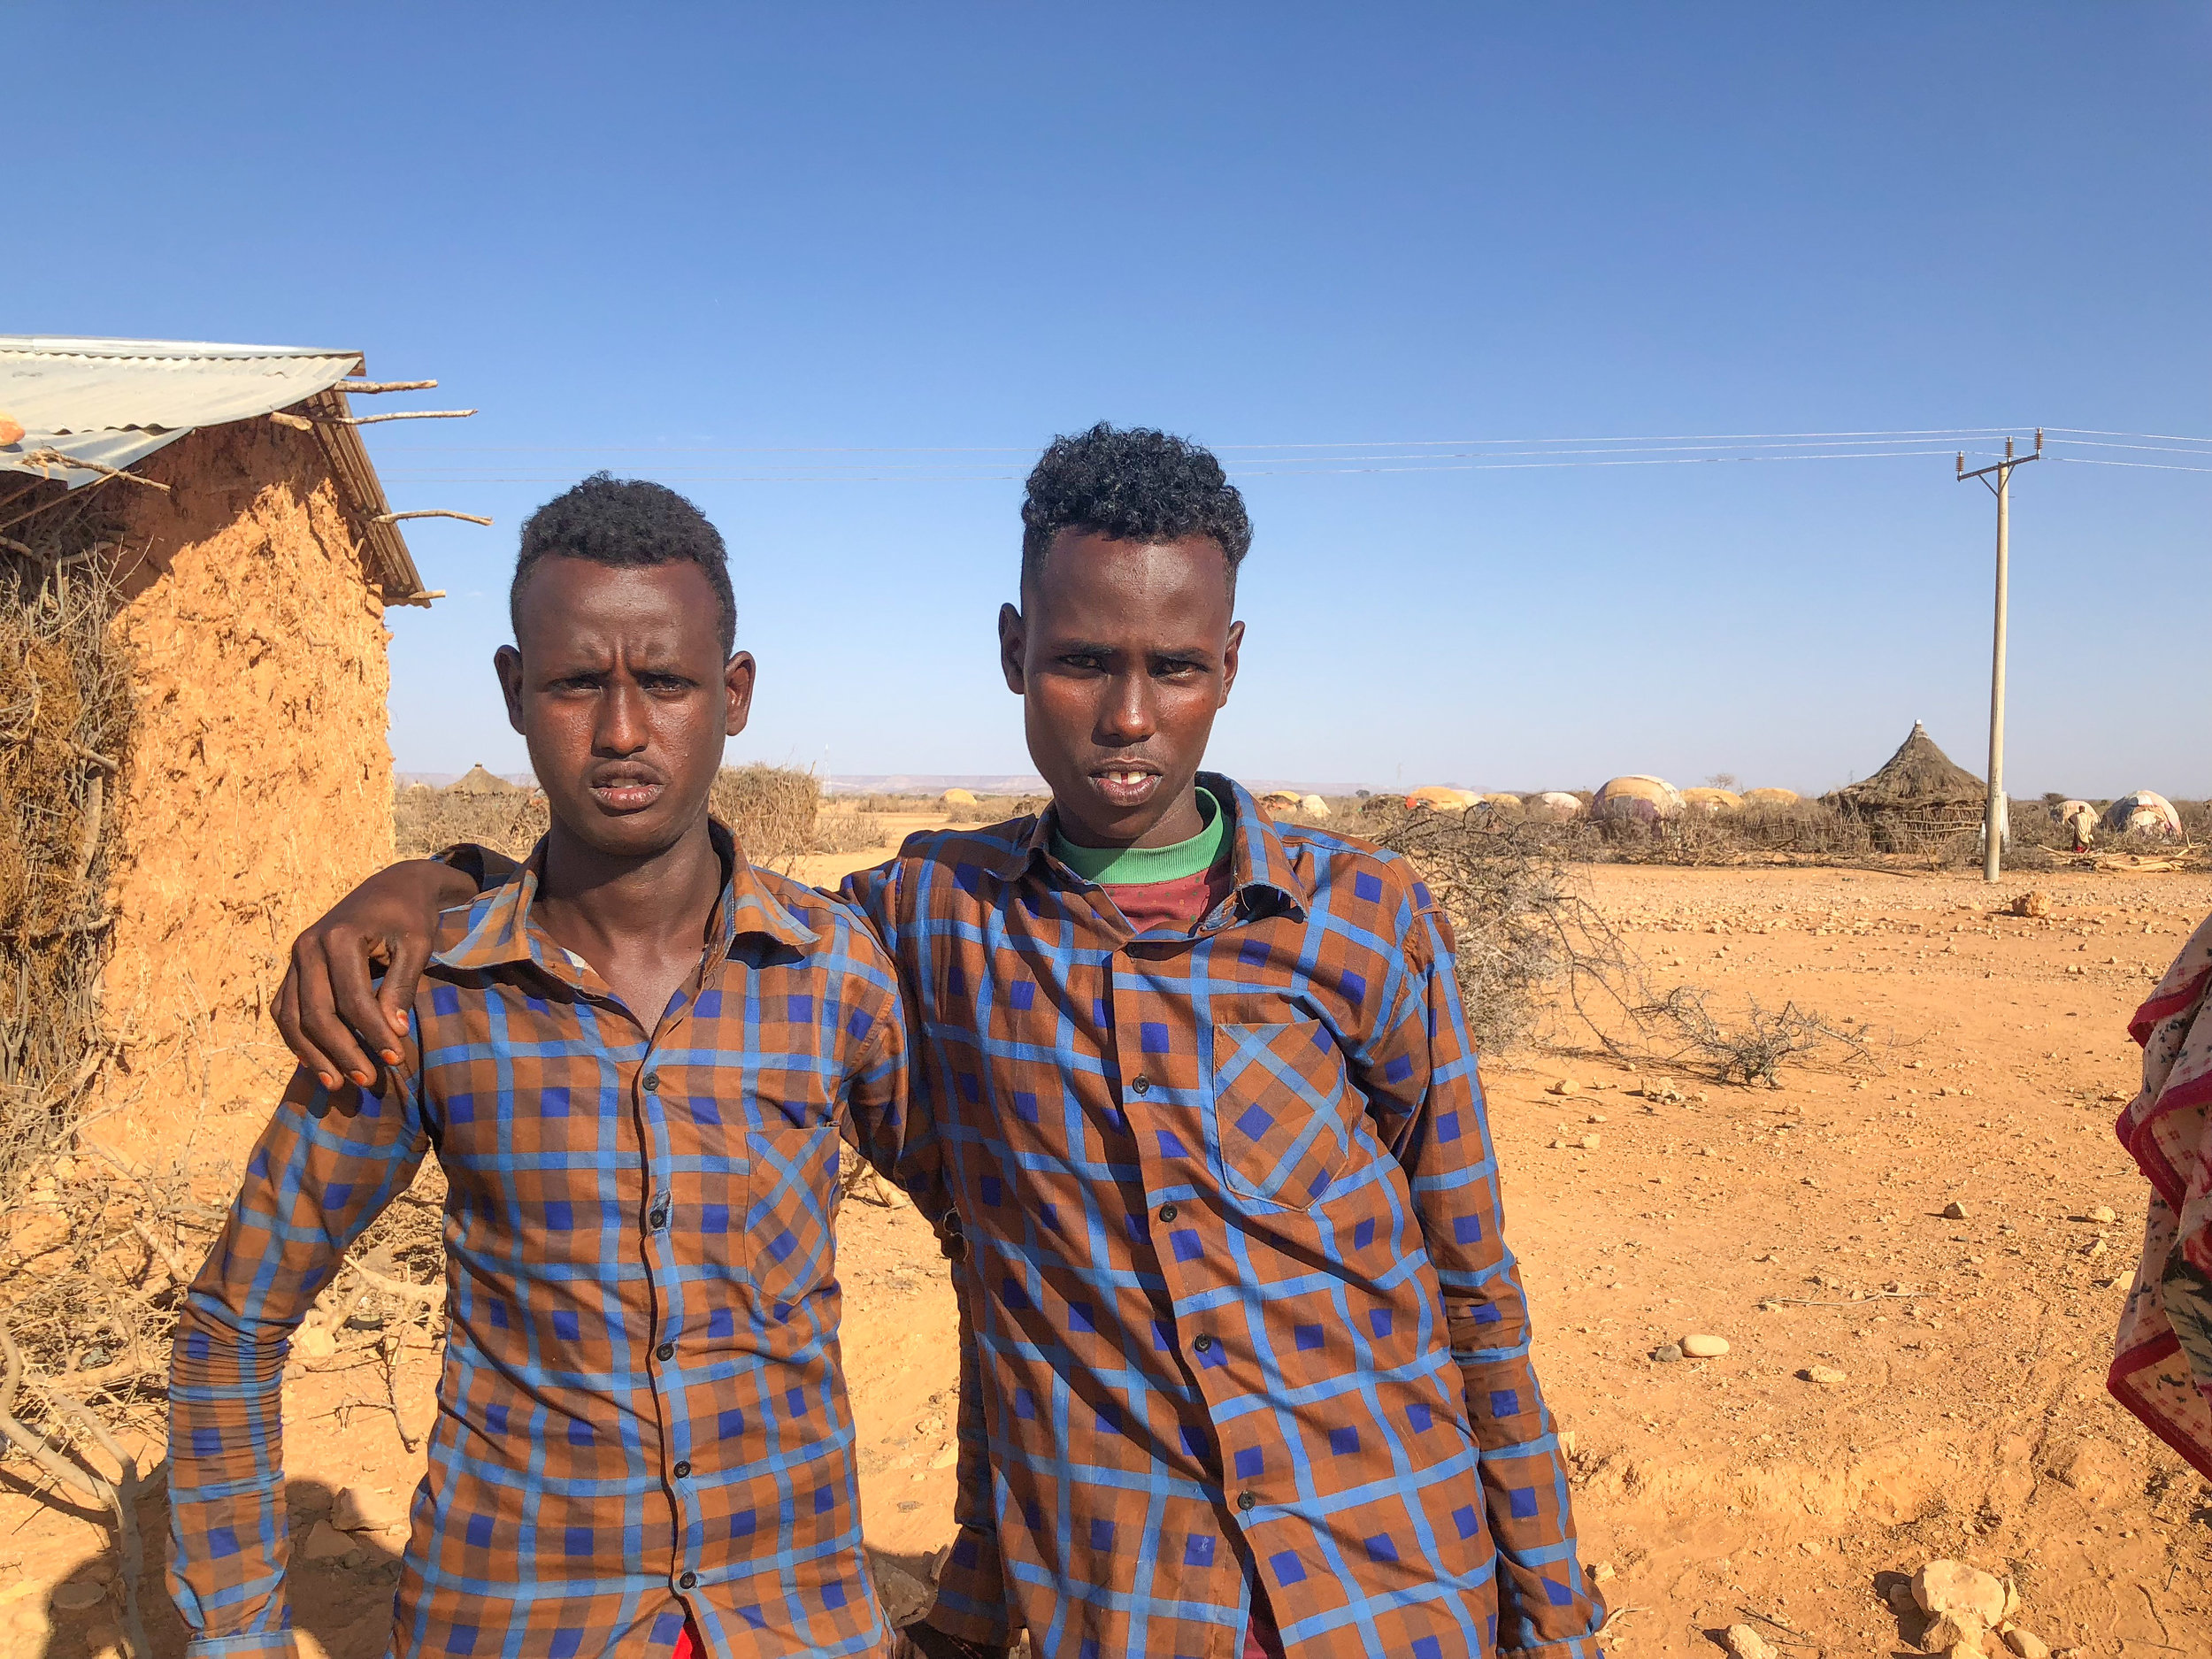 Teenage boys displaced by drought in Ethiopia. Photo by Refugees International.